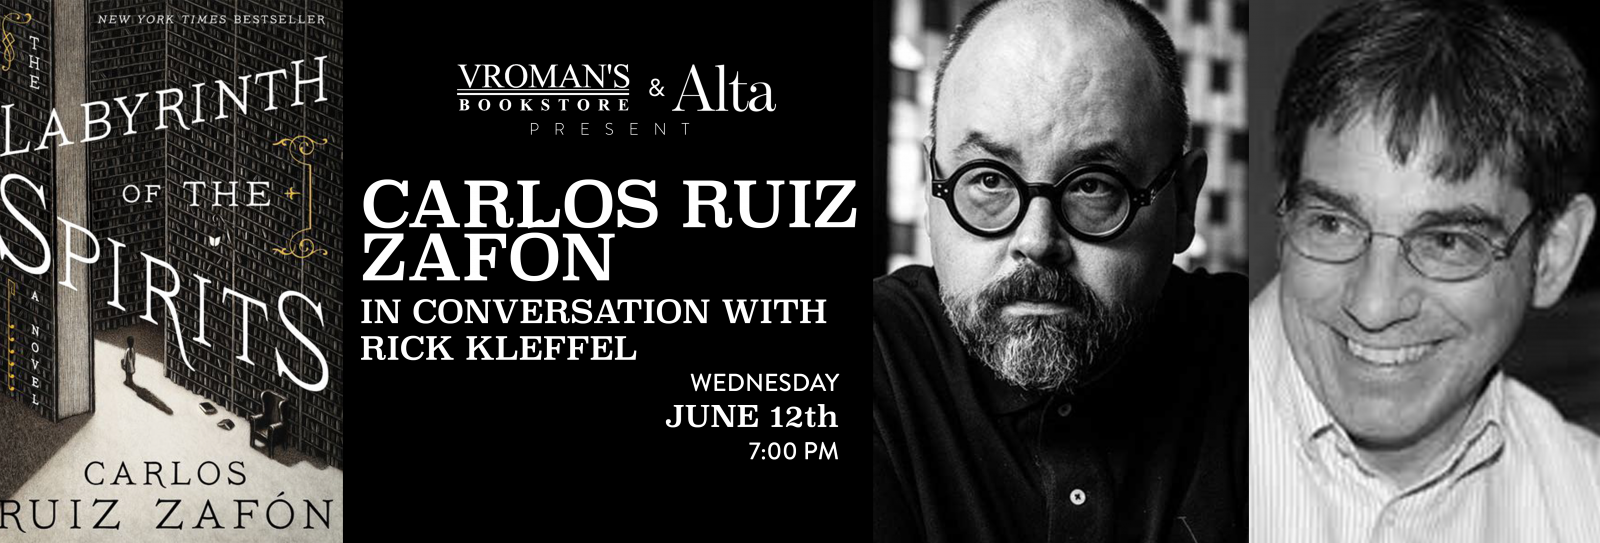 Carlos Ruiz Zafon book signing Wednesday June 12th at 7pm